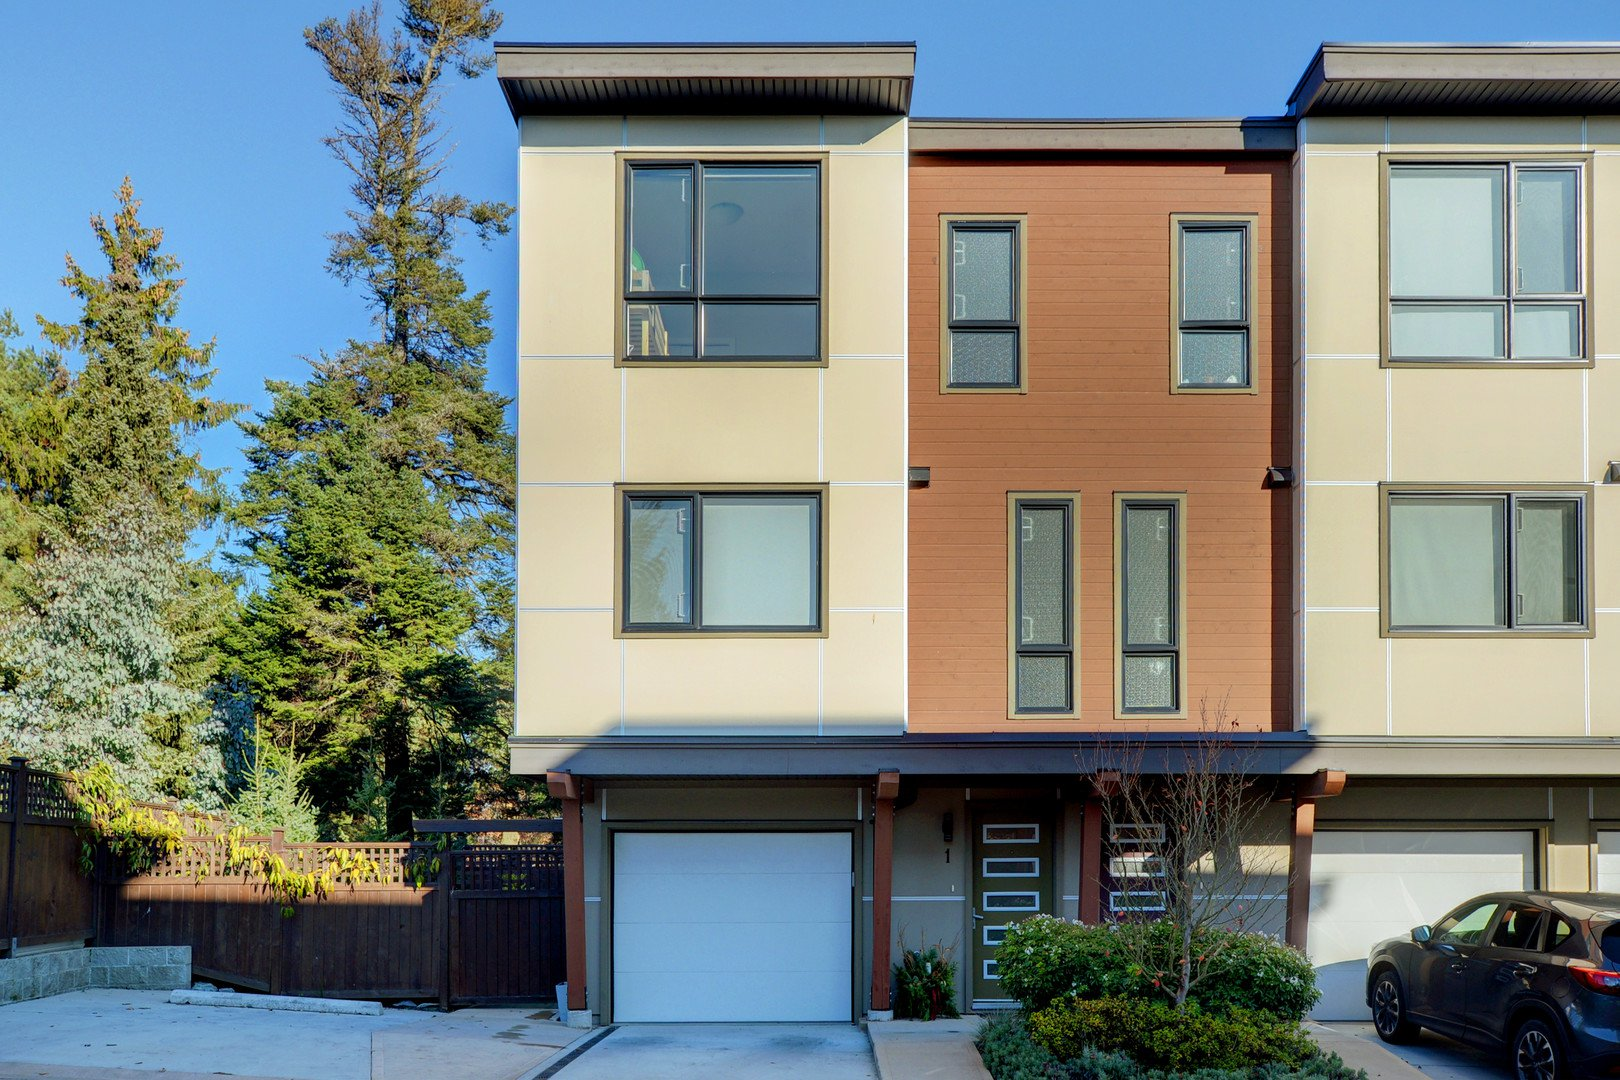 Main Photo: 1 1060 Tillicum Rd in VICTORIA: Es Kinsmen Park Row/Townhouse for sale (Esquimalt)  : MLS®# 801935